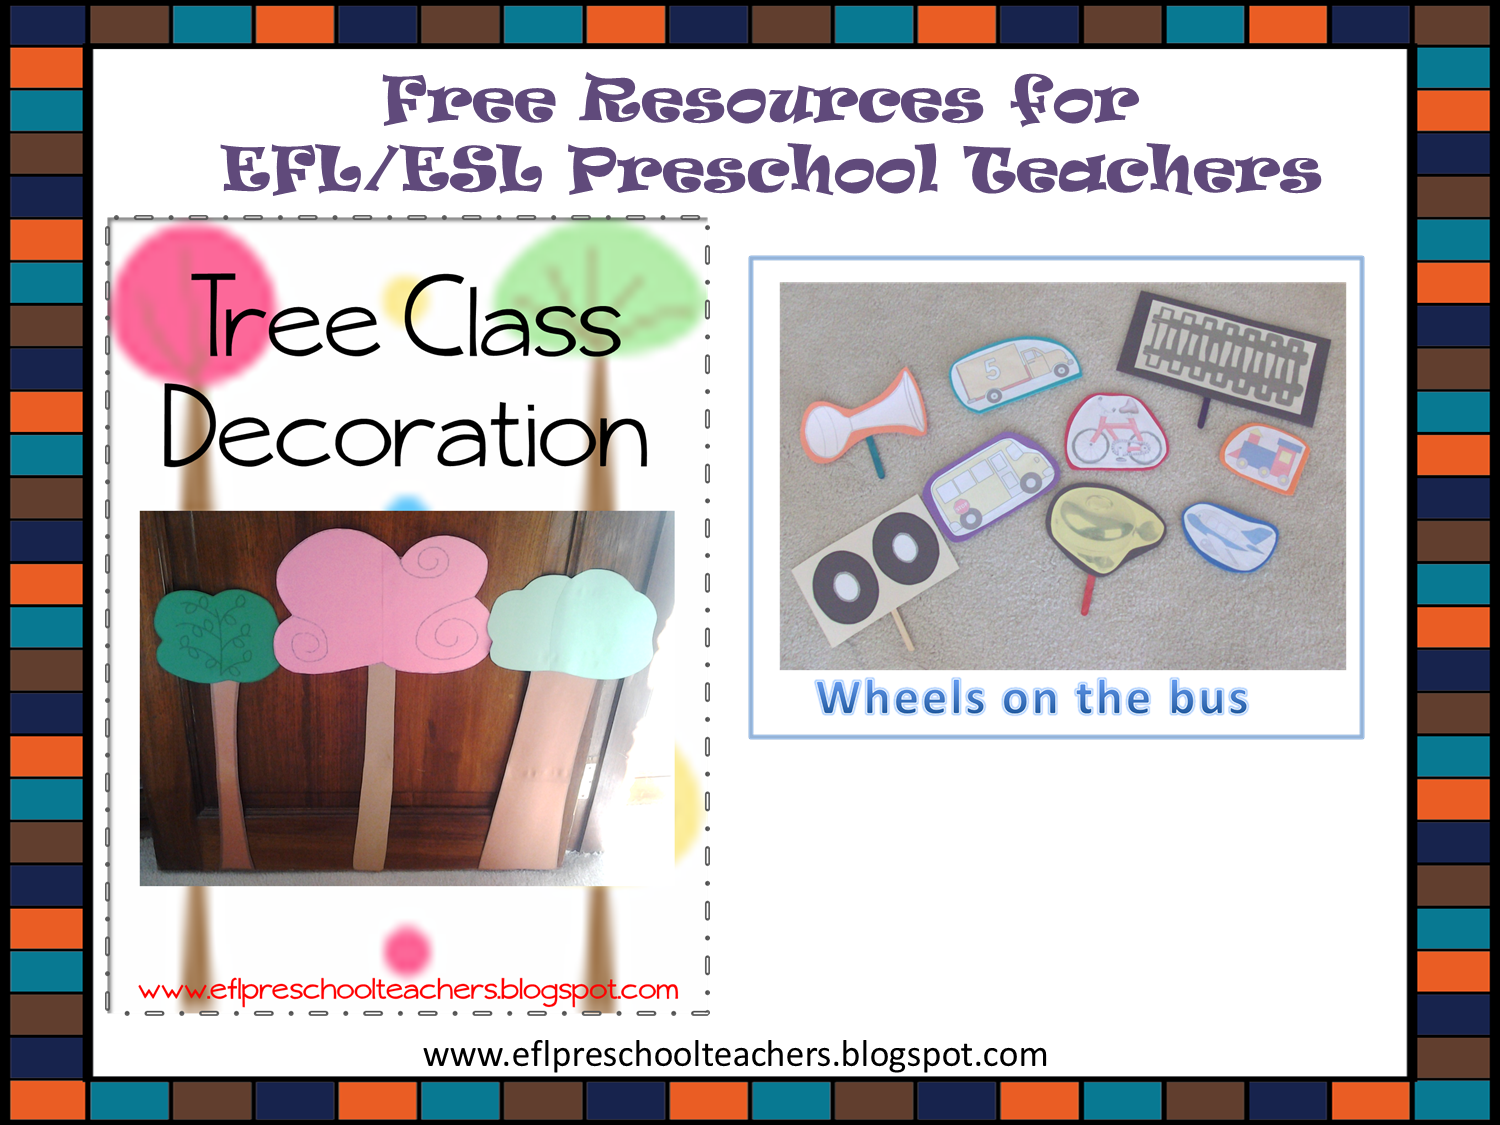 Esl Efl Preschool Teachers Free Resources For Efl Esl